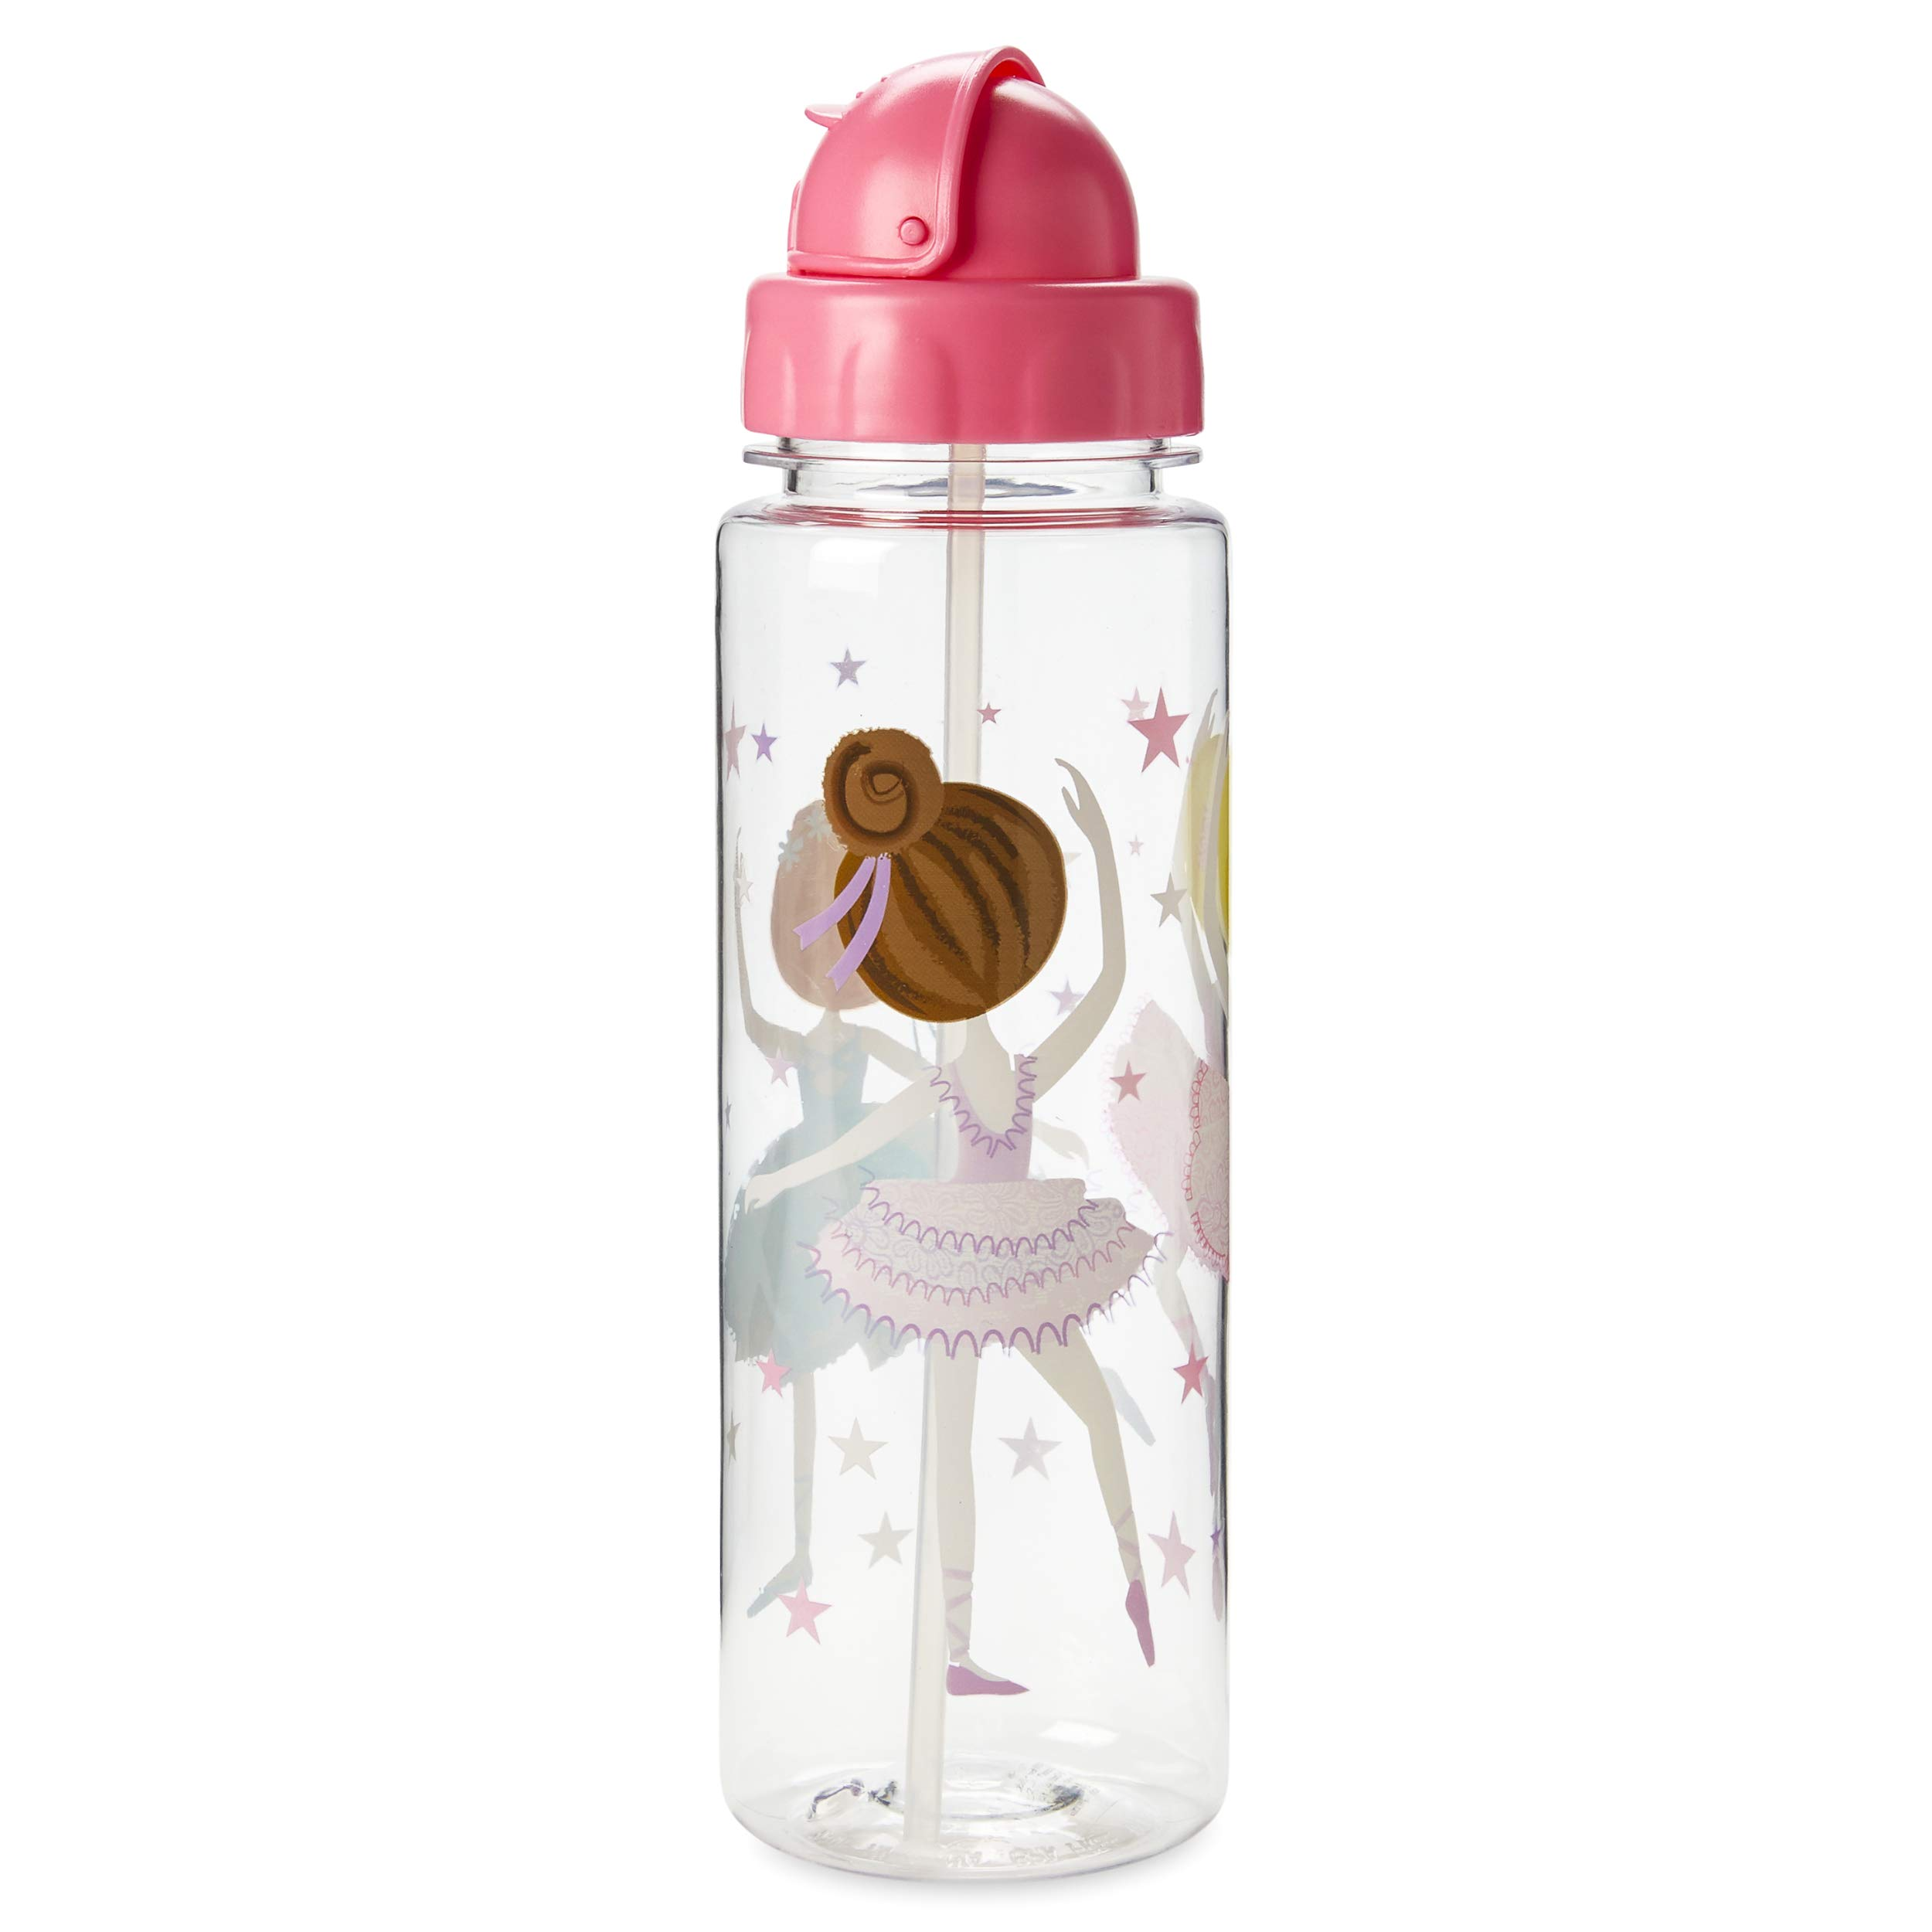 Tri-Coastal Design Themed Water Bottle with Lid & Spill-Proof Flip-Top Straw – Tall Reusable Shatterproof Hydration Drinking Tumbler - BPA Free Dishwasher Safe Cup